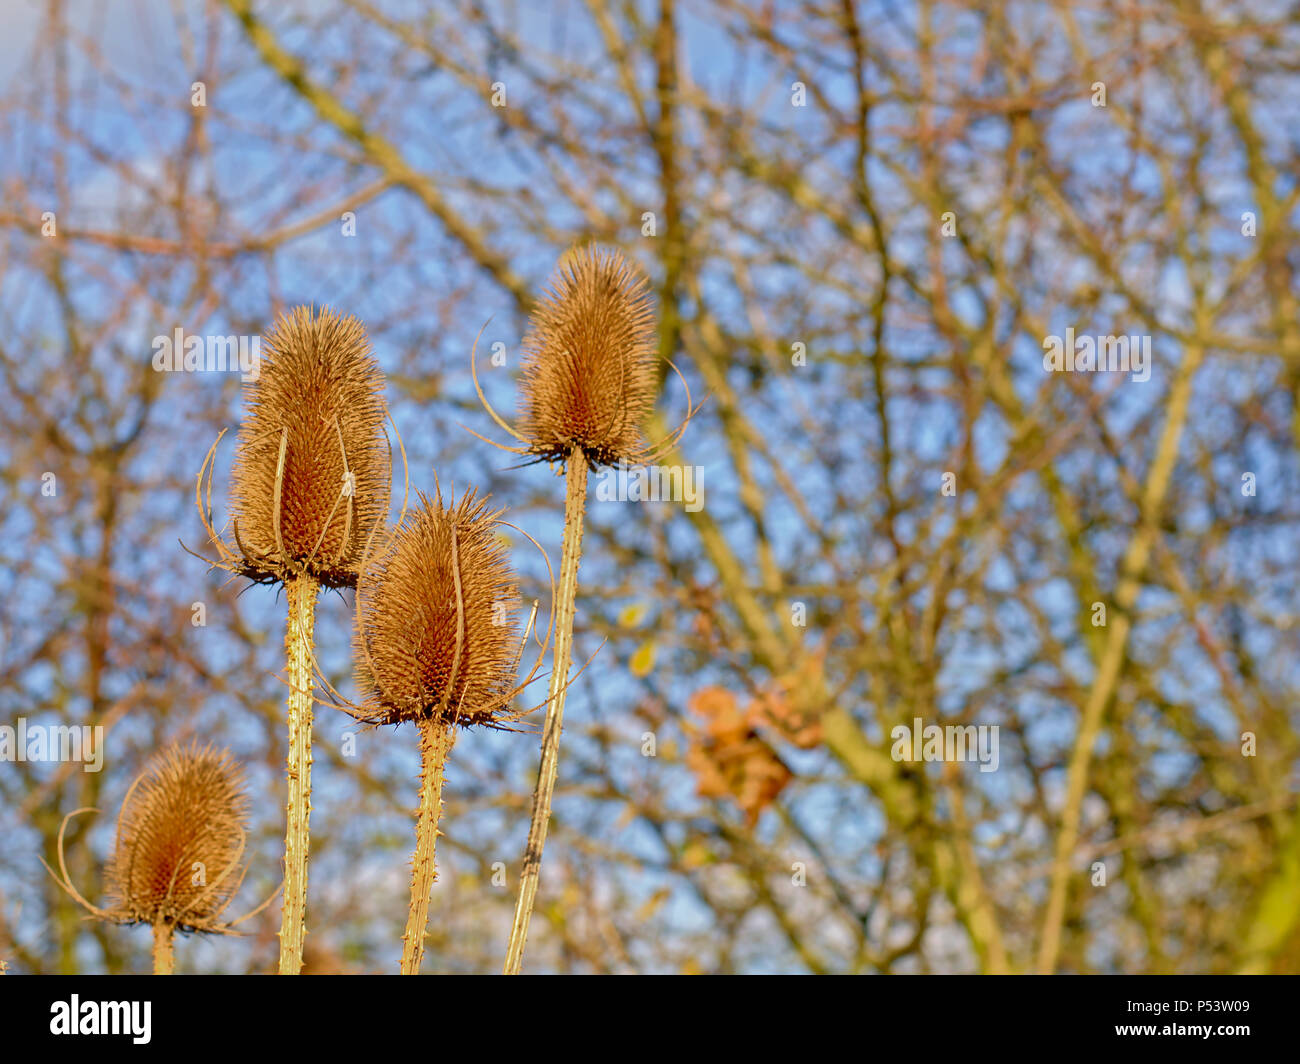 Brown dried winter teasel head, selective focus with blurred bare trees and blue sky in the background - Stock Image